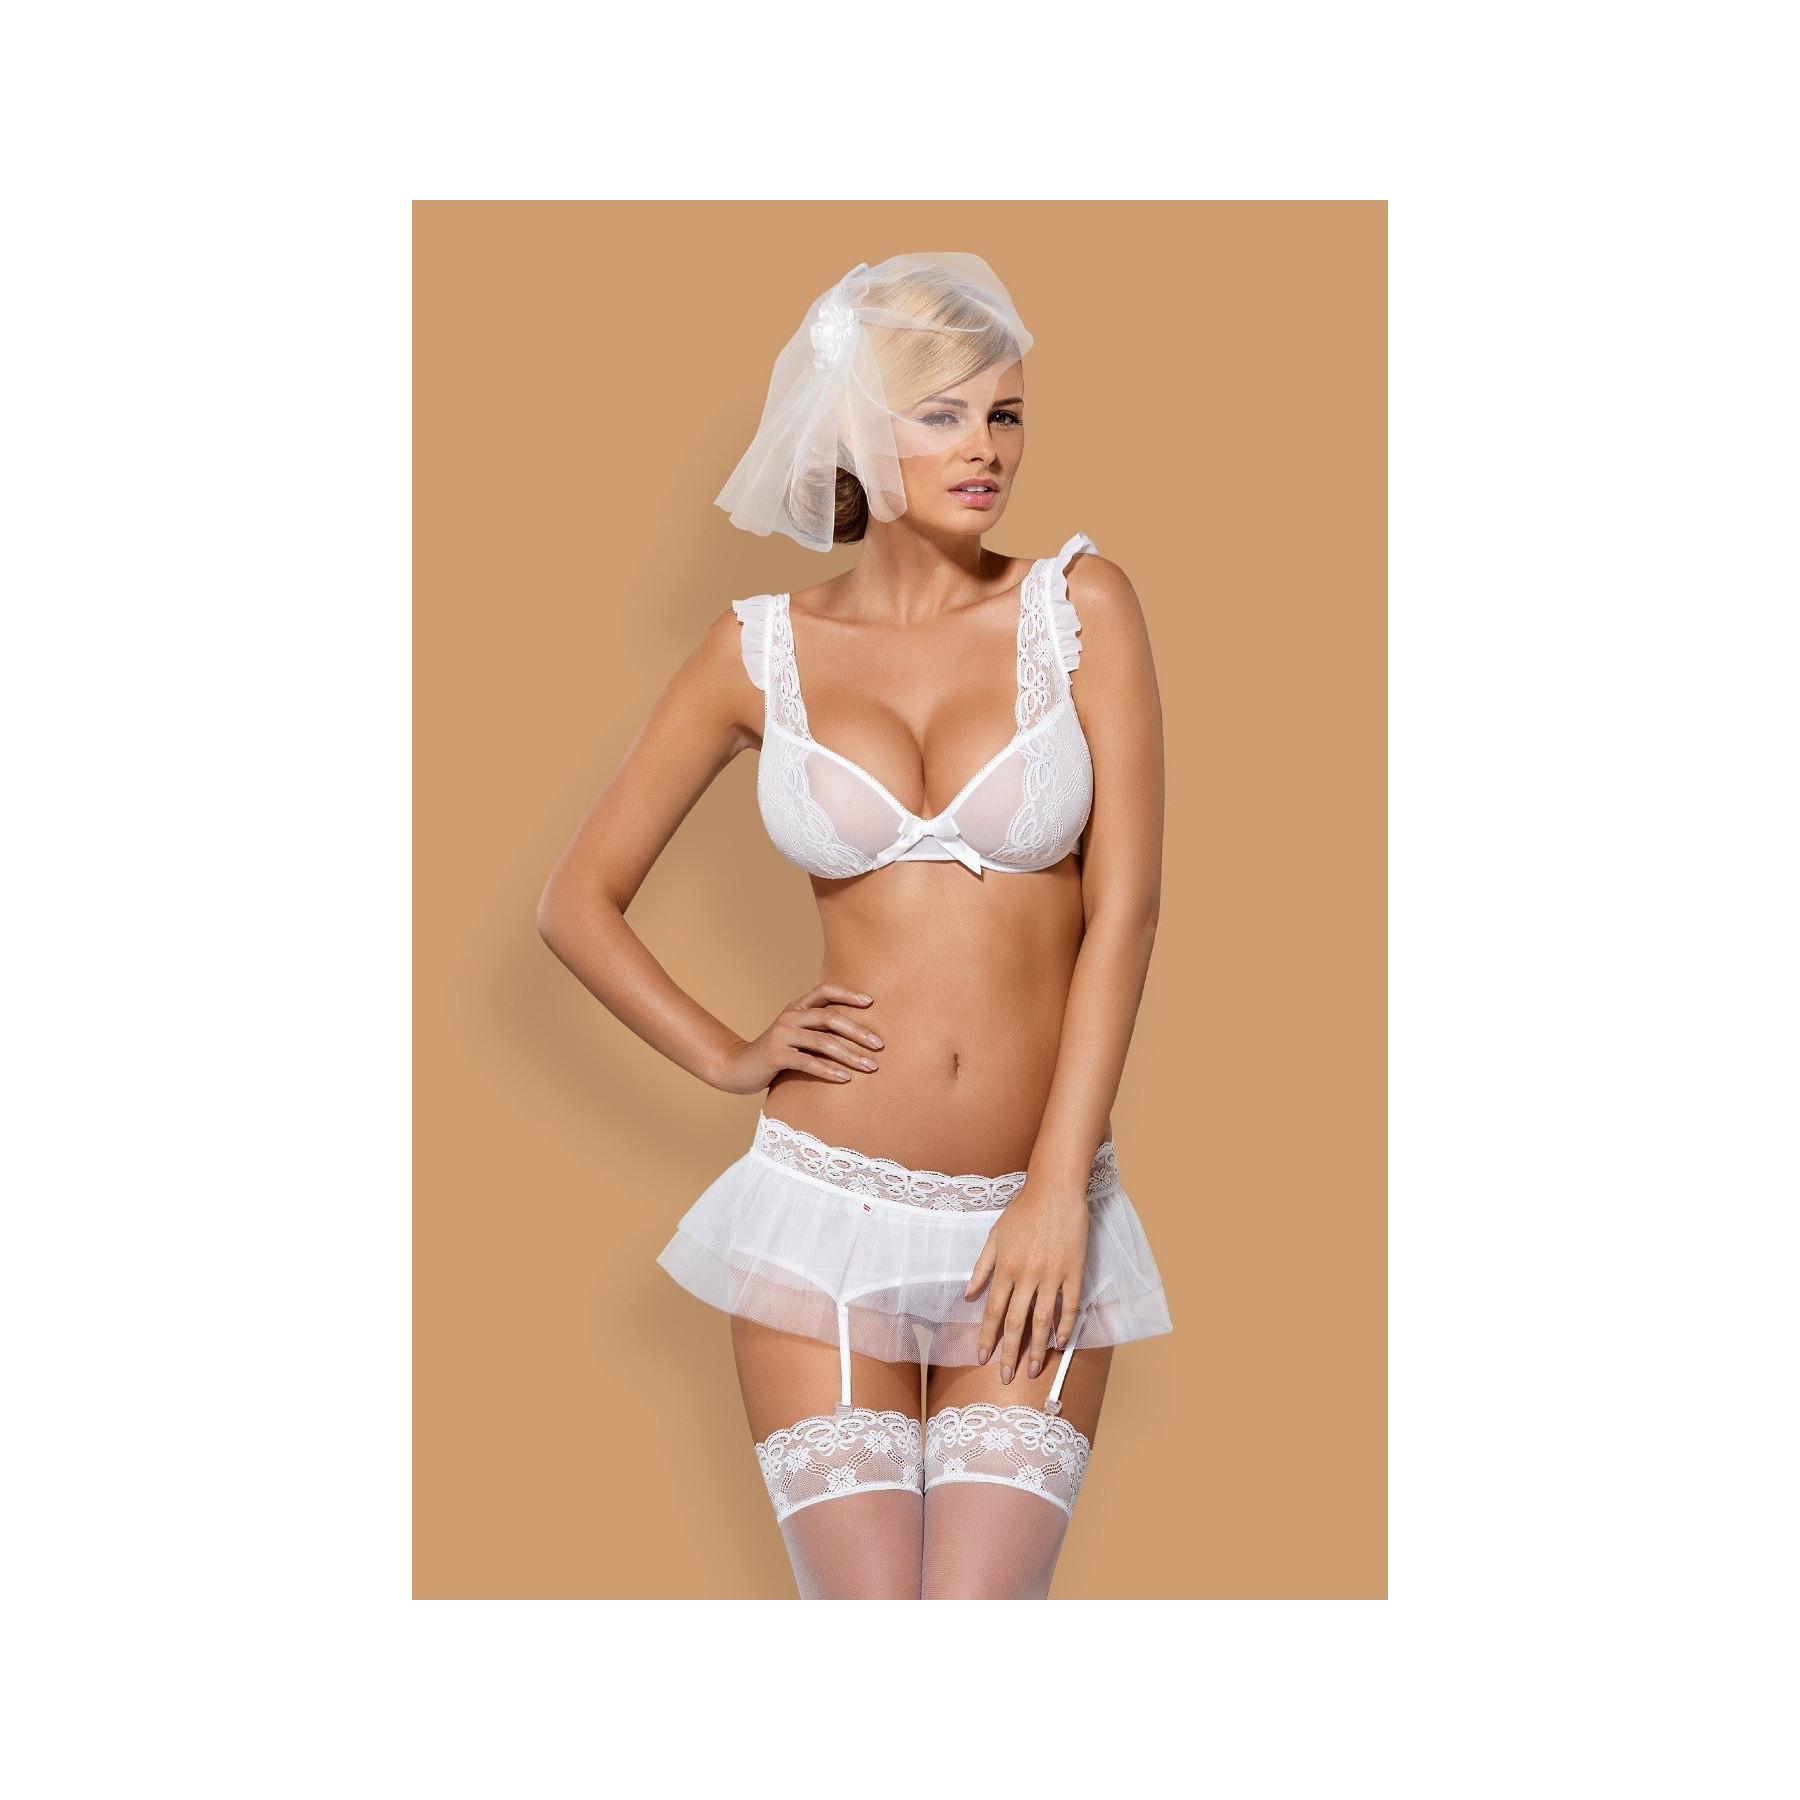 Completino intimo Julitta lingerie sposa sexy Obsessive